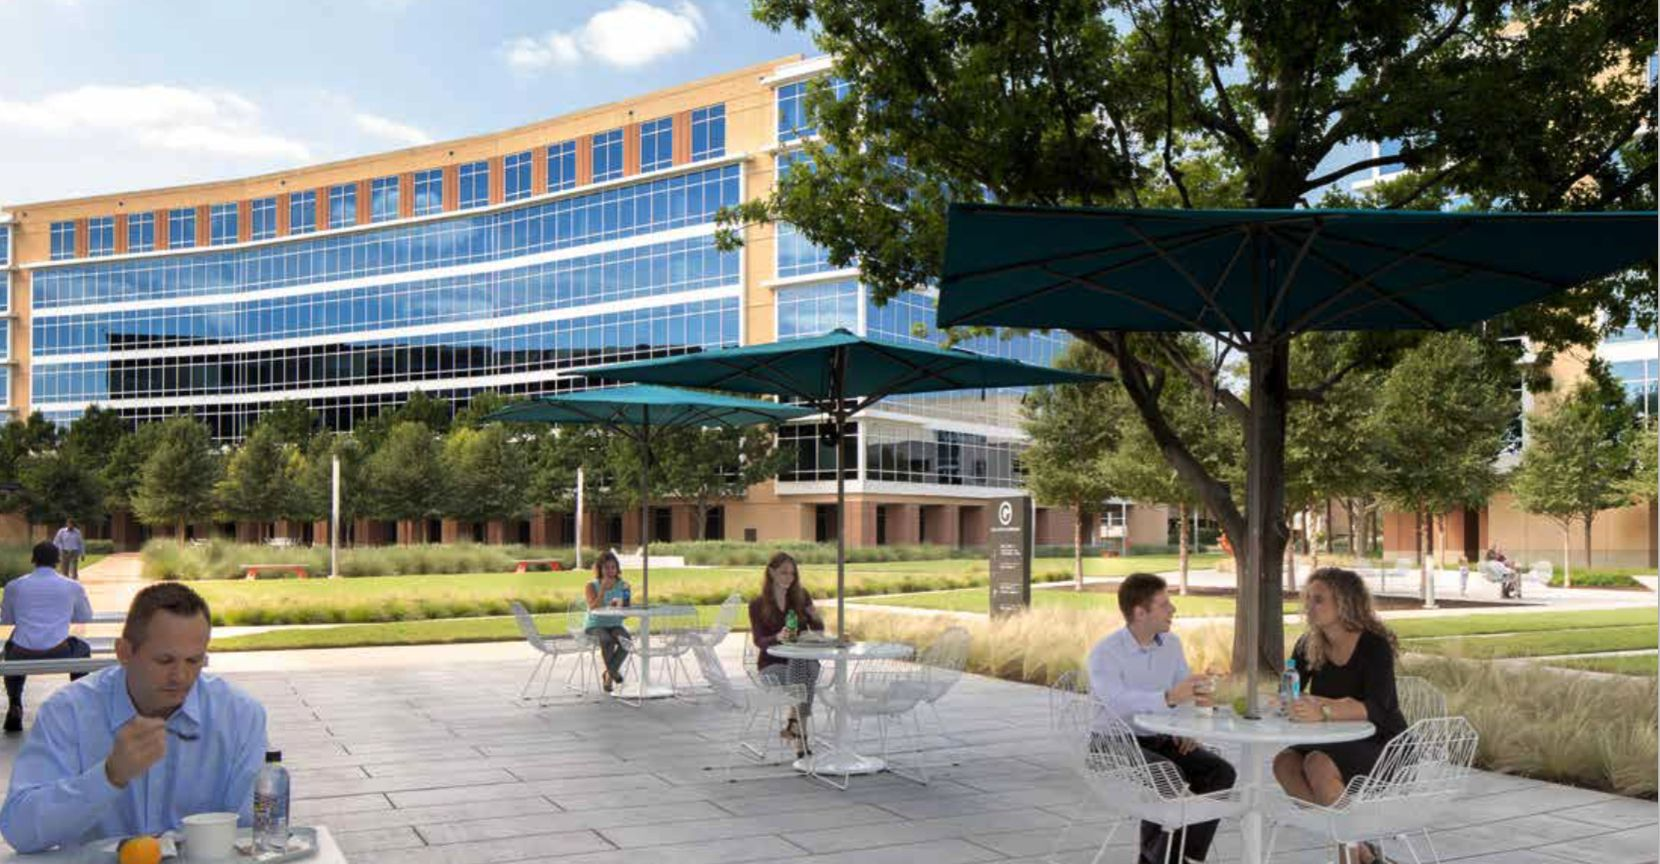 Spear Street added extensive tenant amenities including outdoor patios to the Galatyn Commons campus.